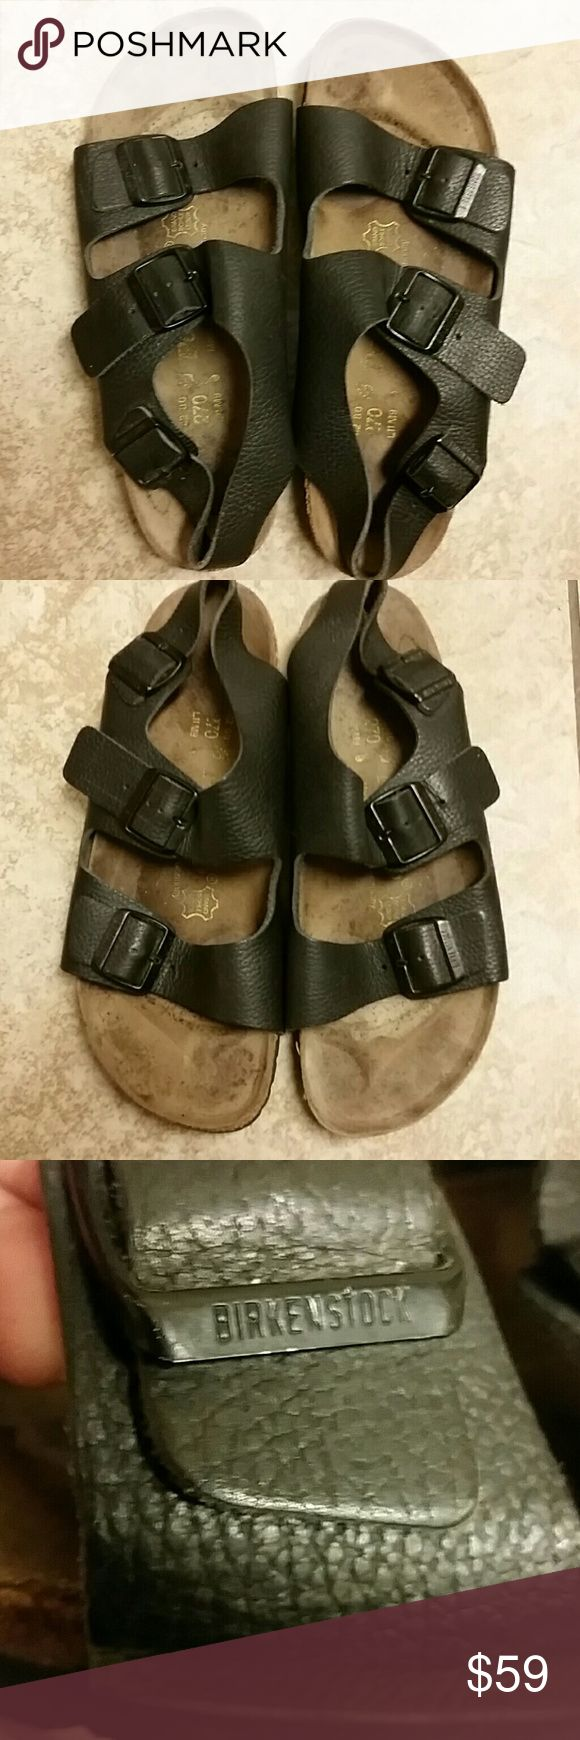 Black Birkenstocks Sandals Size 11 Some interior staining as seen in pics. Can probably be cleaned up or have the inserts replaced. Made in Germany. Women's size 11 Men's size 9. Birkenstock Shoes Sandals